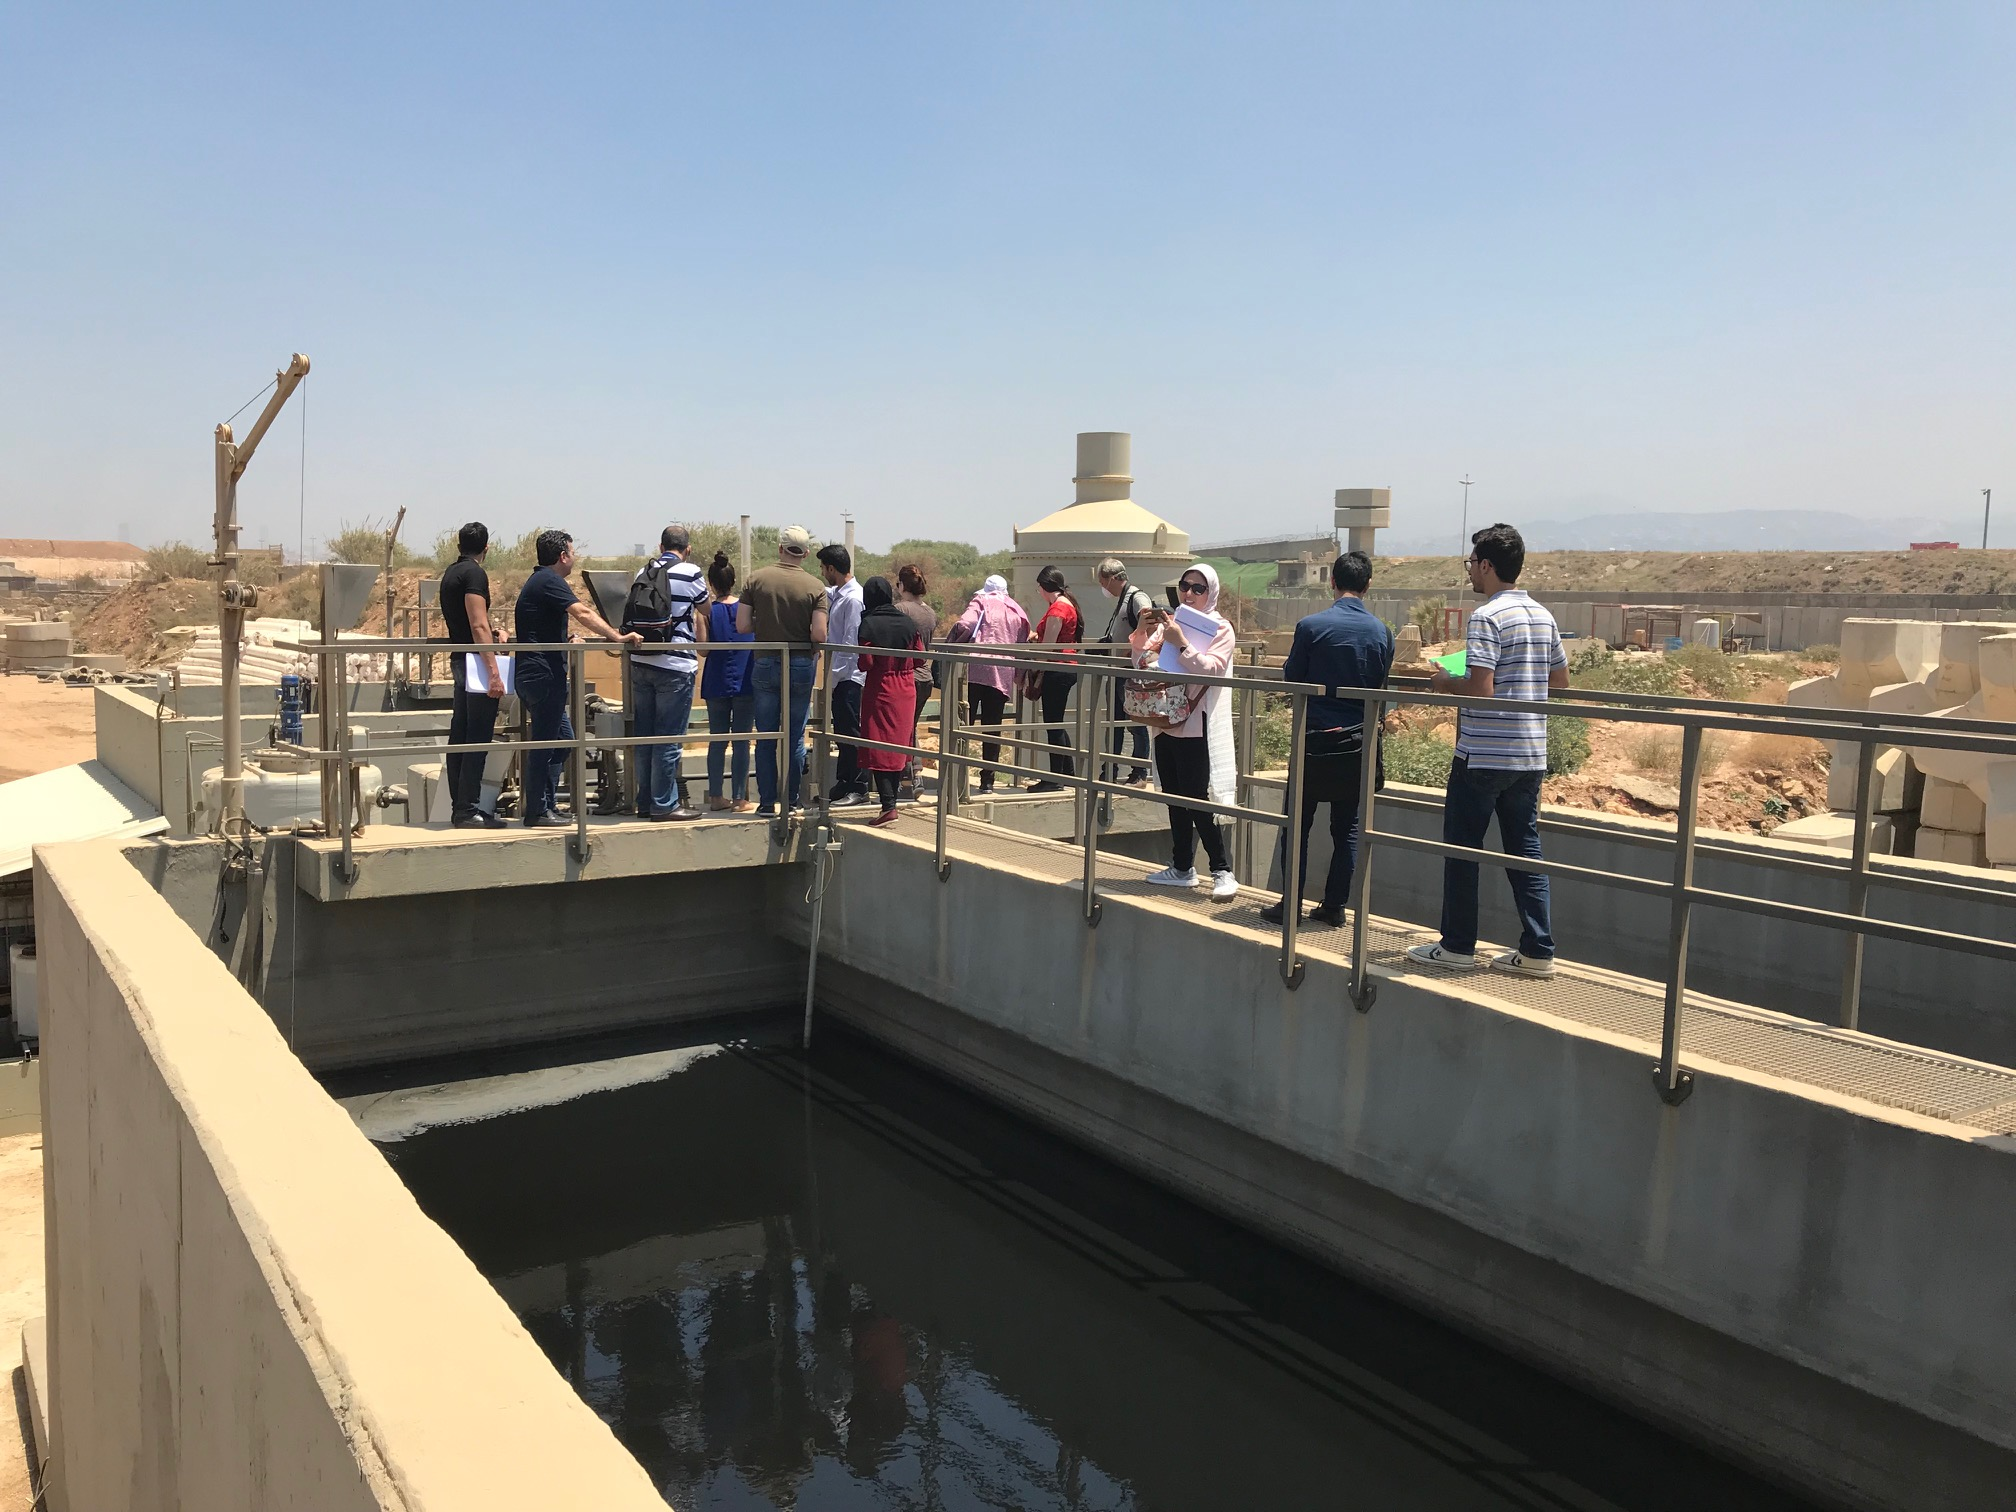 25-29 June 2018, Beirut, Lebanon – SWIM-H2020 SM Study Tour on Leachate Management